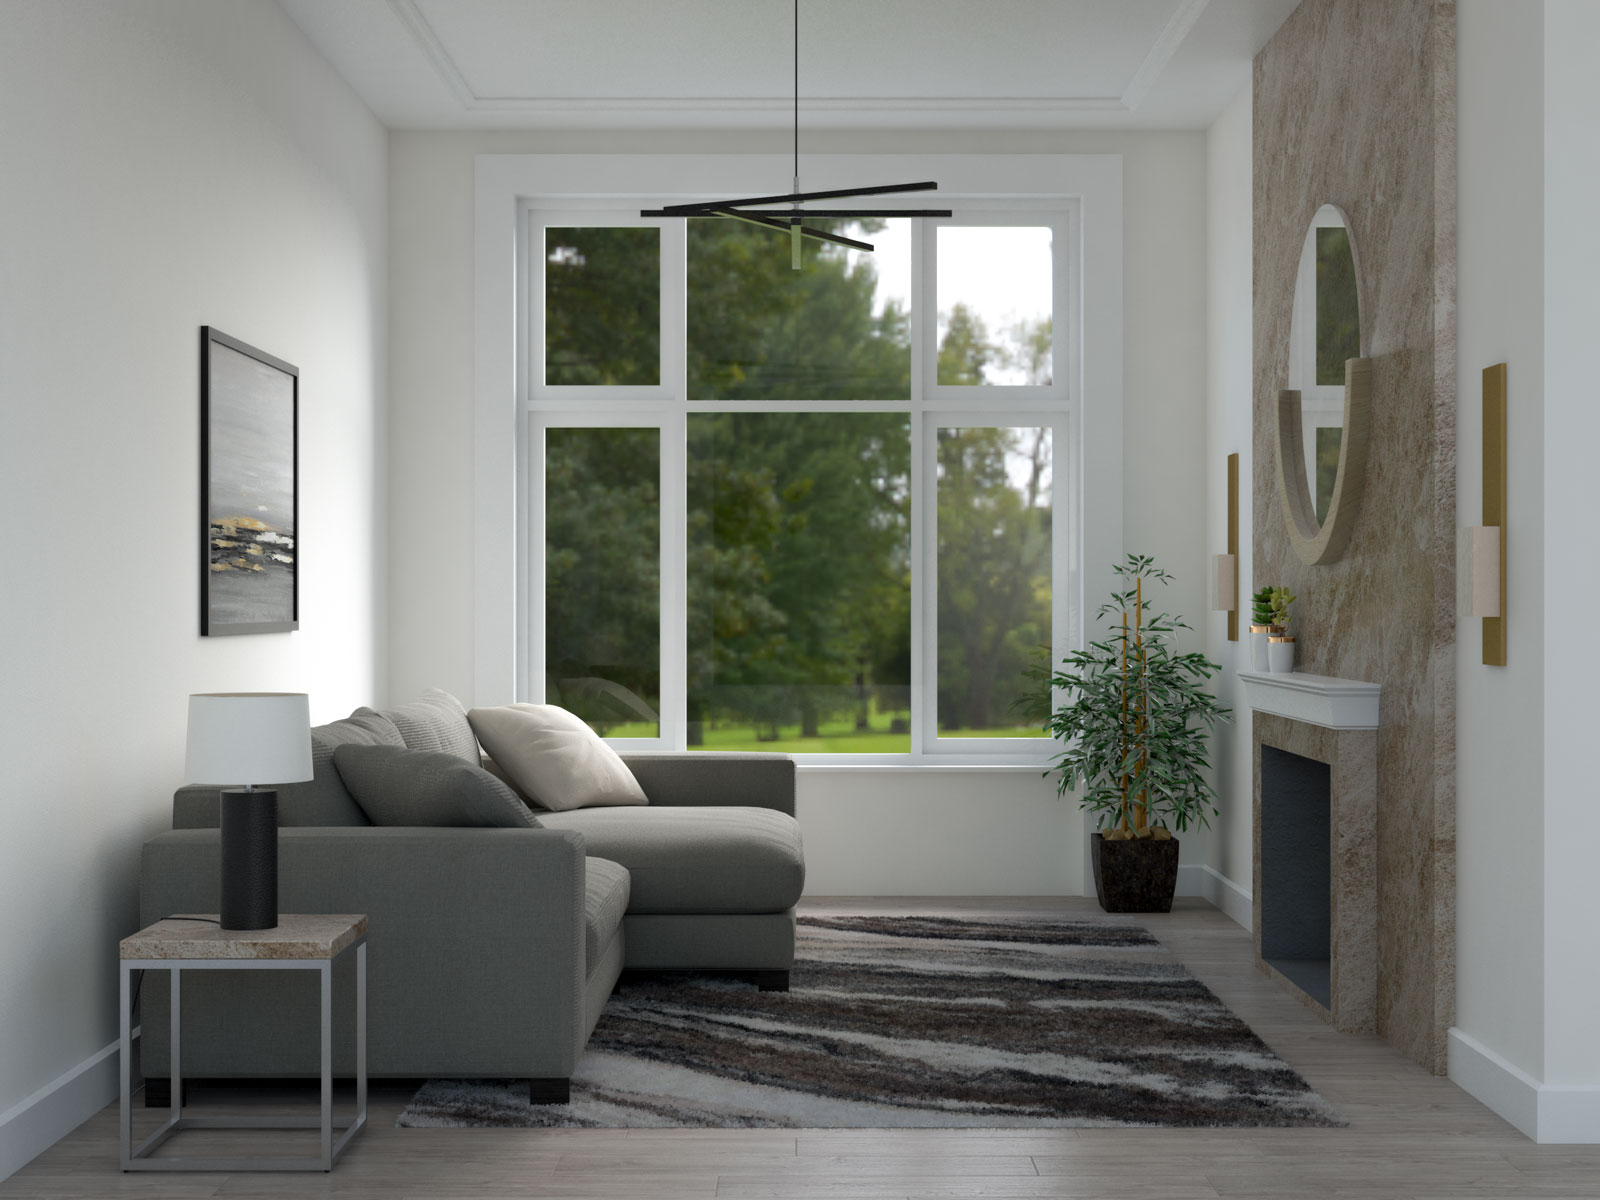 Abstract brown rug in small living room